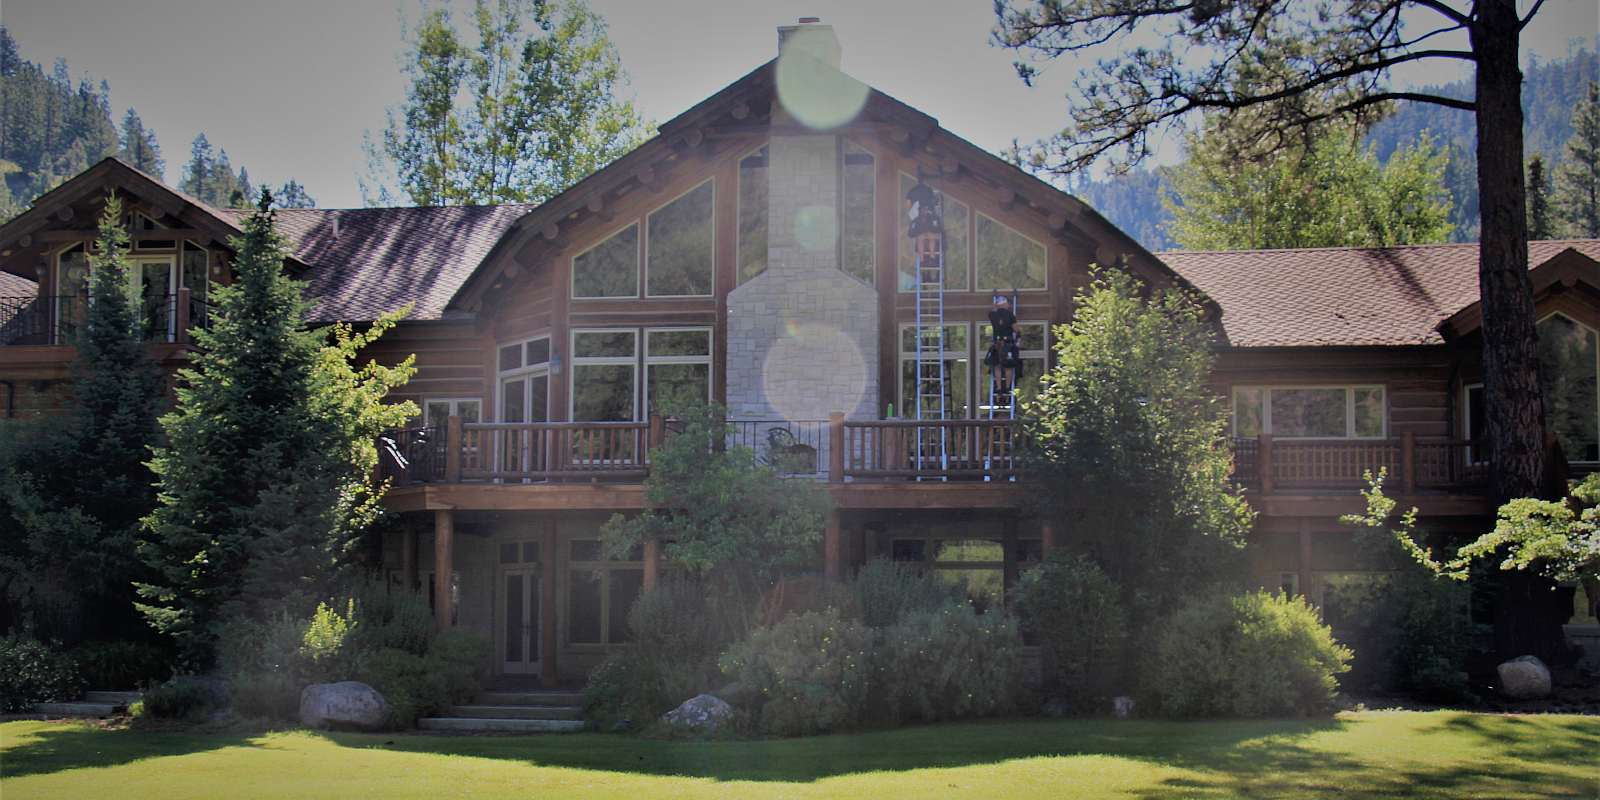 Purity Montana window cleaners cleaning front windows of a beautiful log cabin